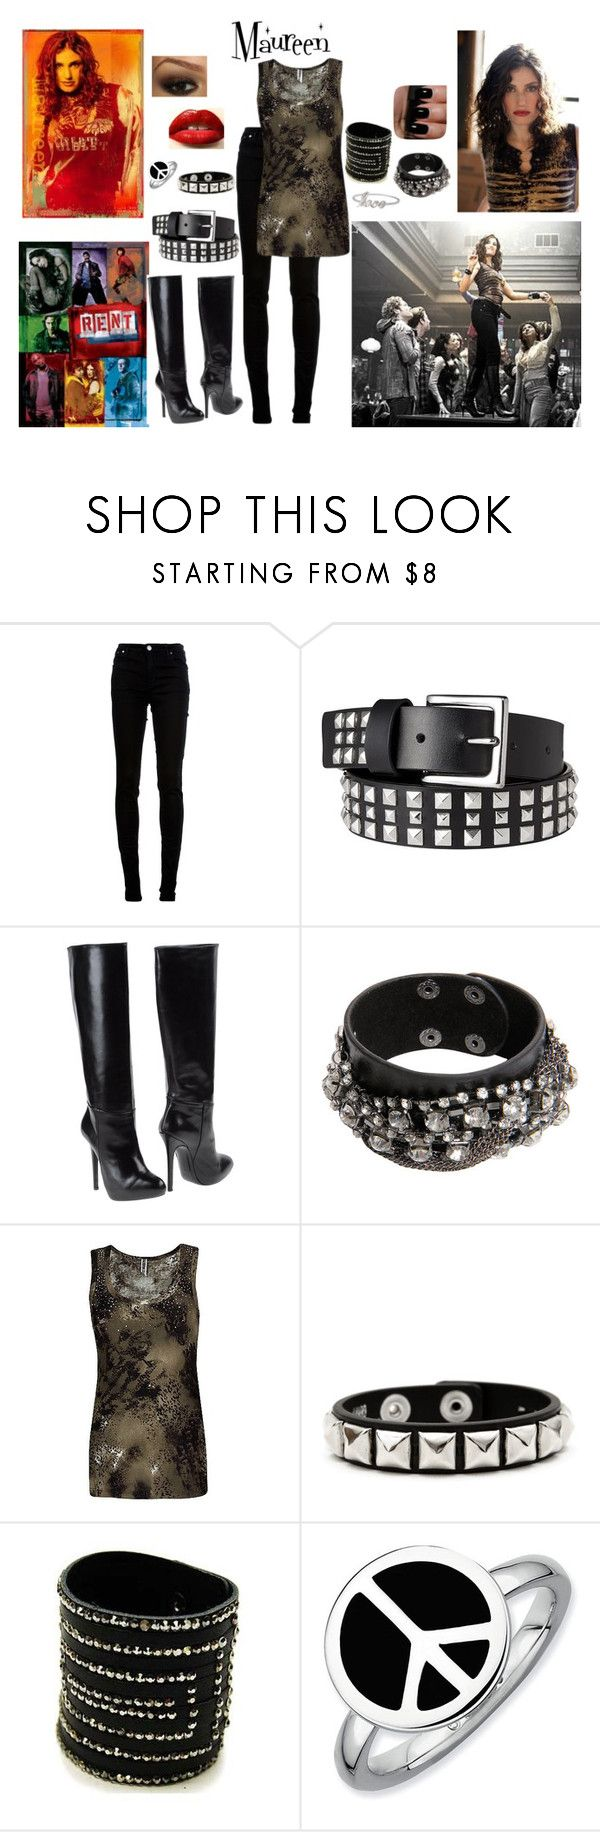 Maureen by whitneysalyer liked on Polyvore featuring dVb